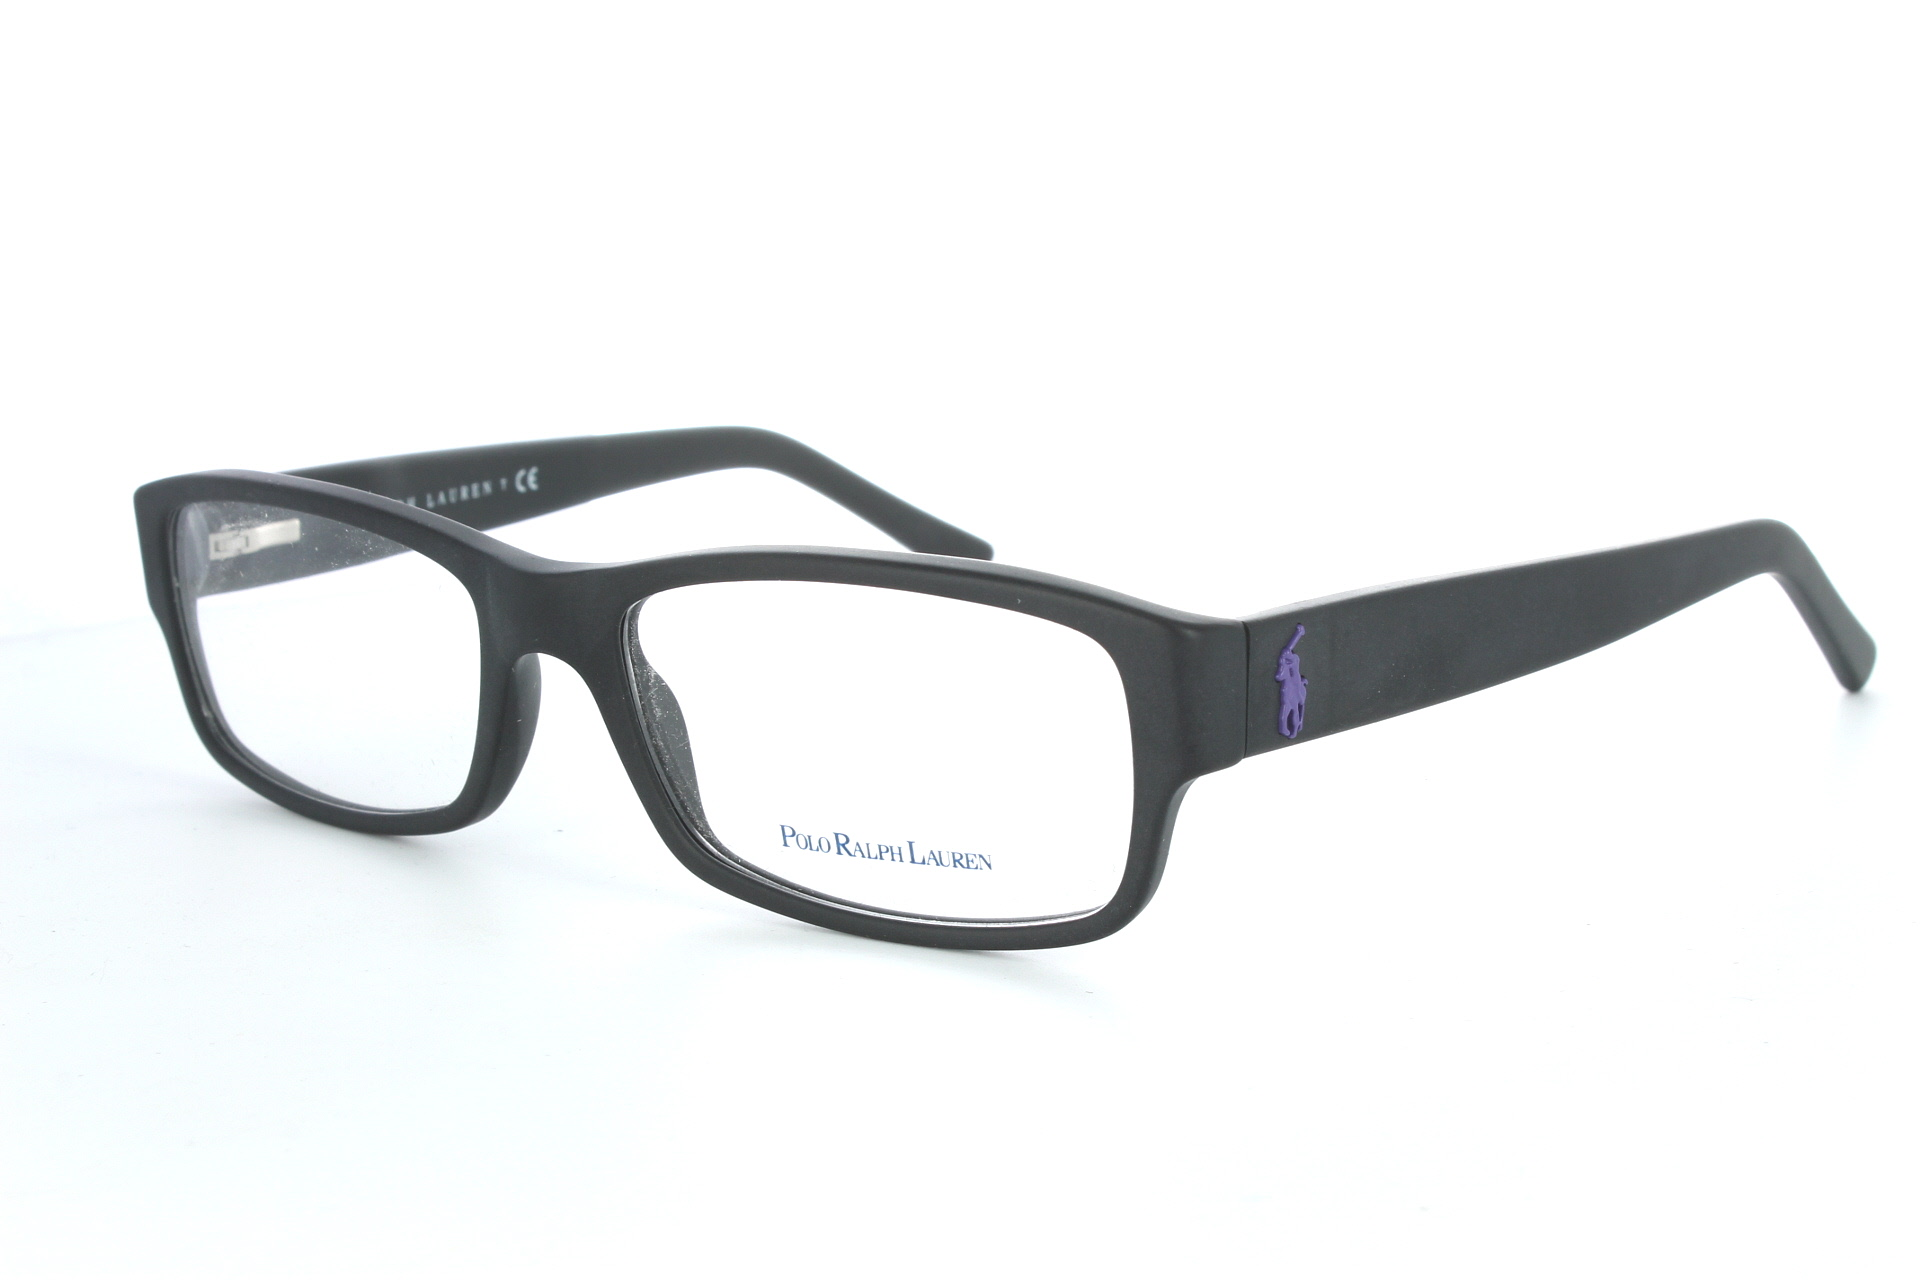 Polo Ralph Lauren Designer Glasses